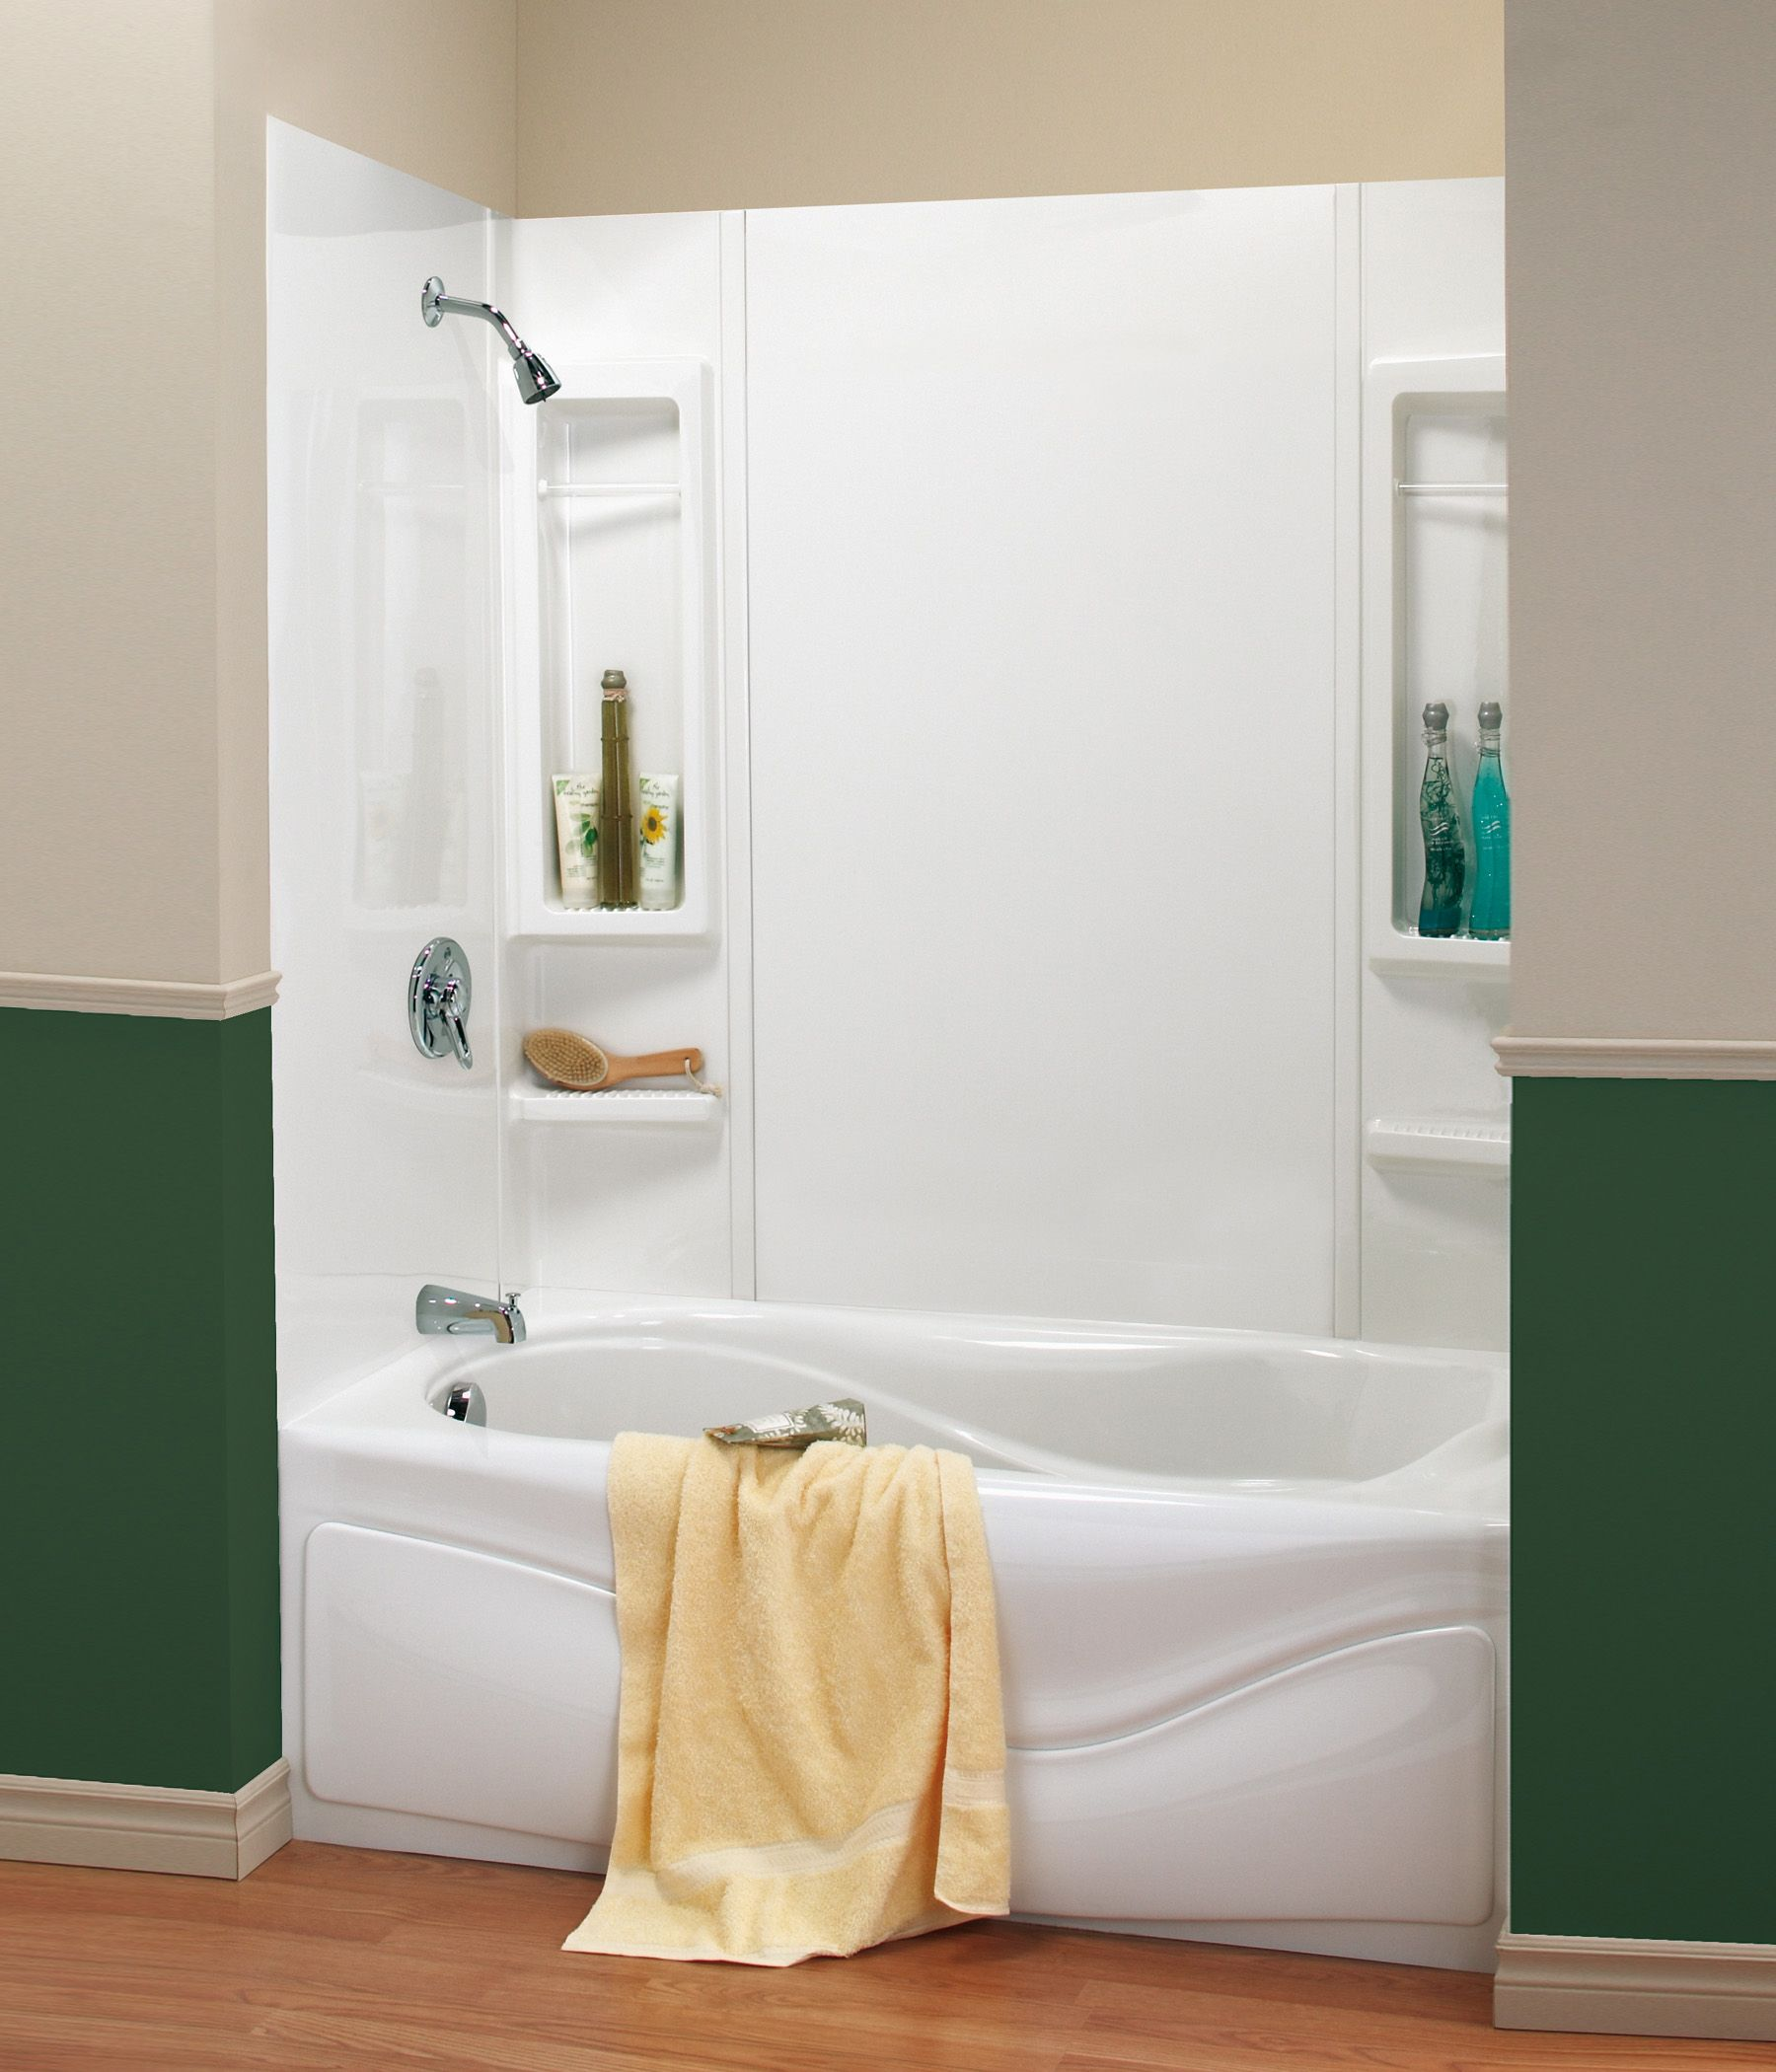 Acrylic Tub Shower Units. One Piece Bathtub Shower Combo  Hot Tubs Jacuzzis Pinterest